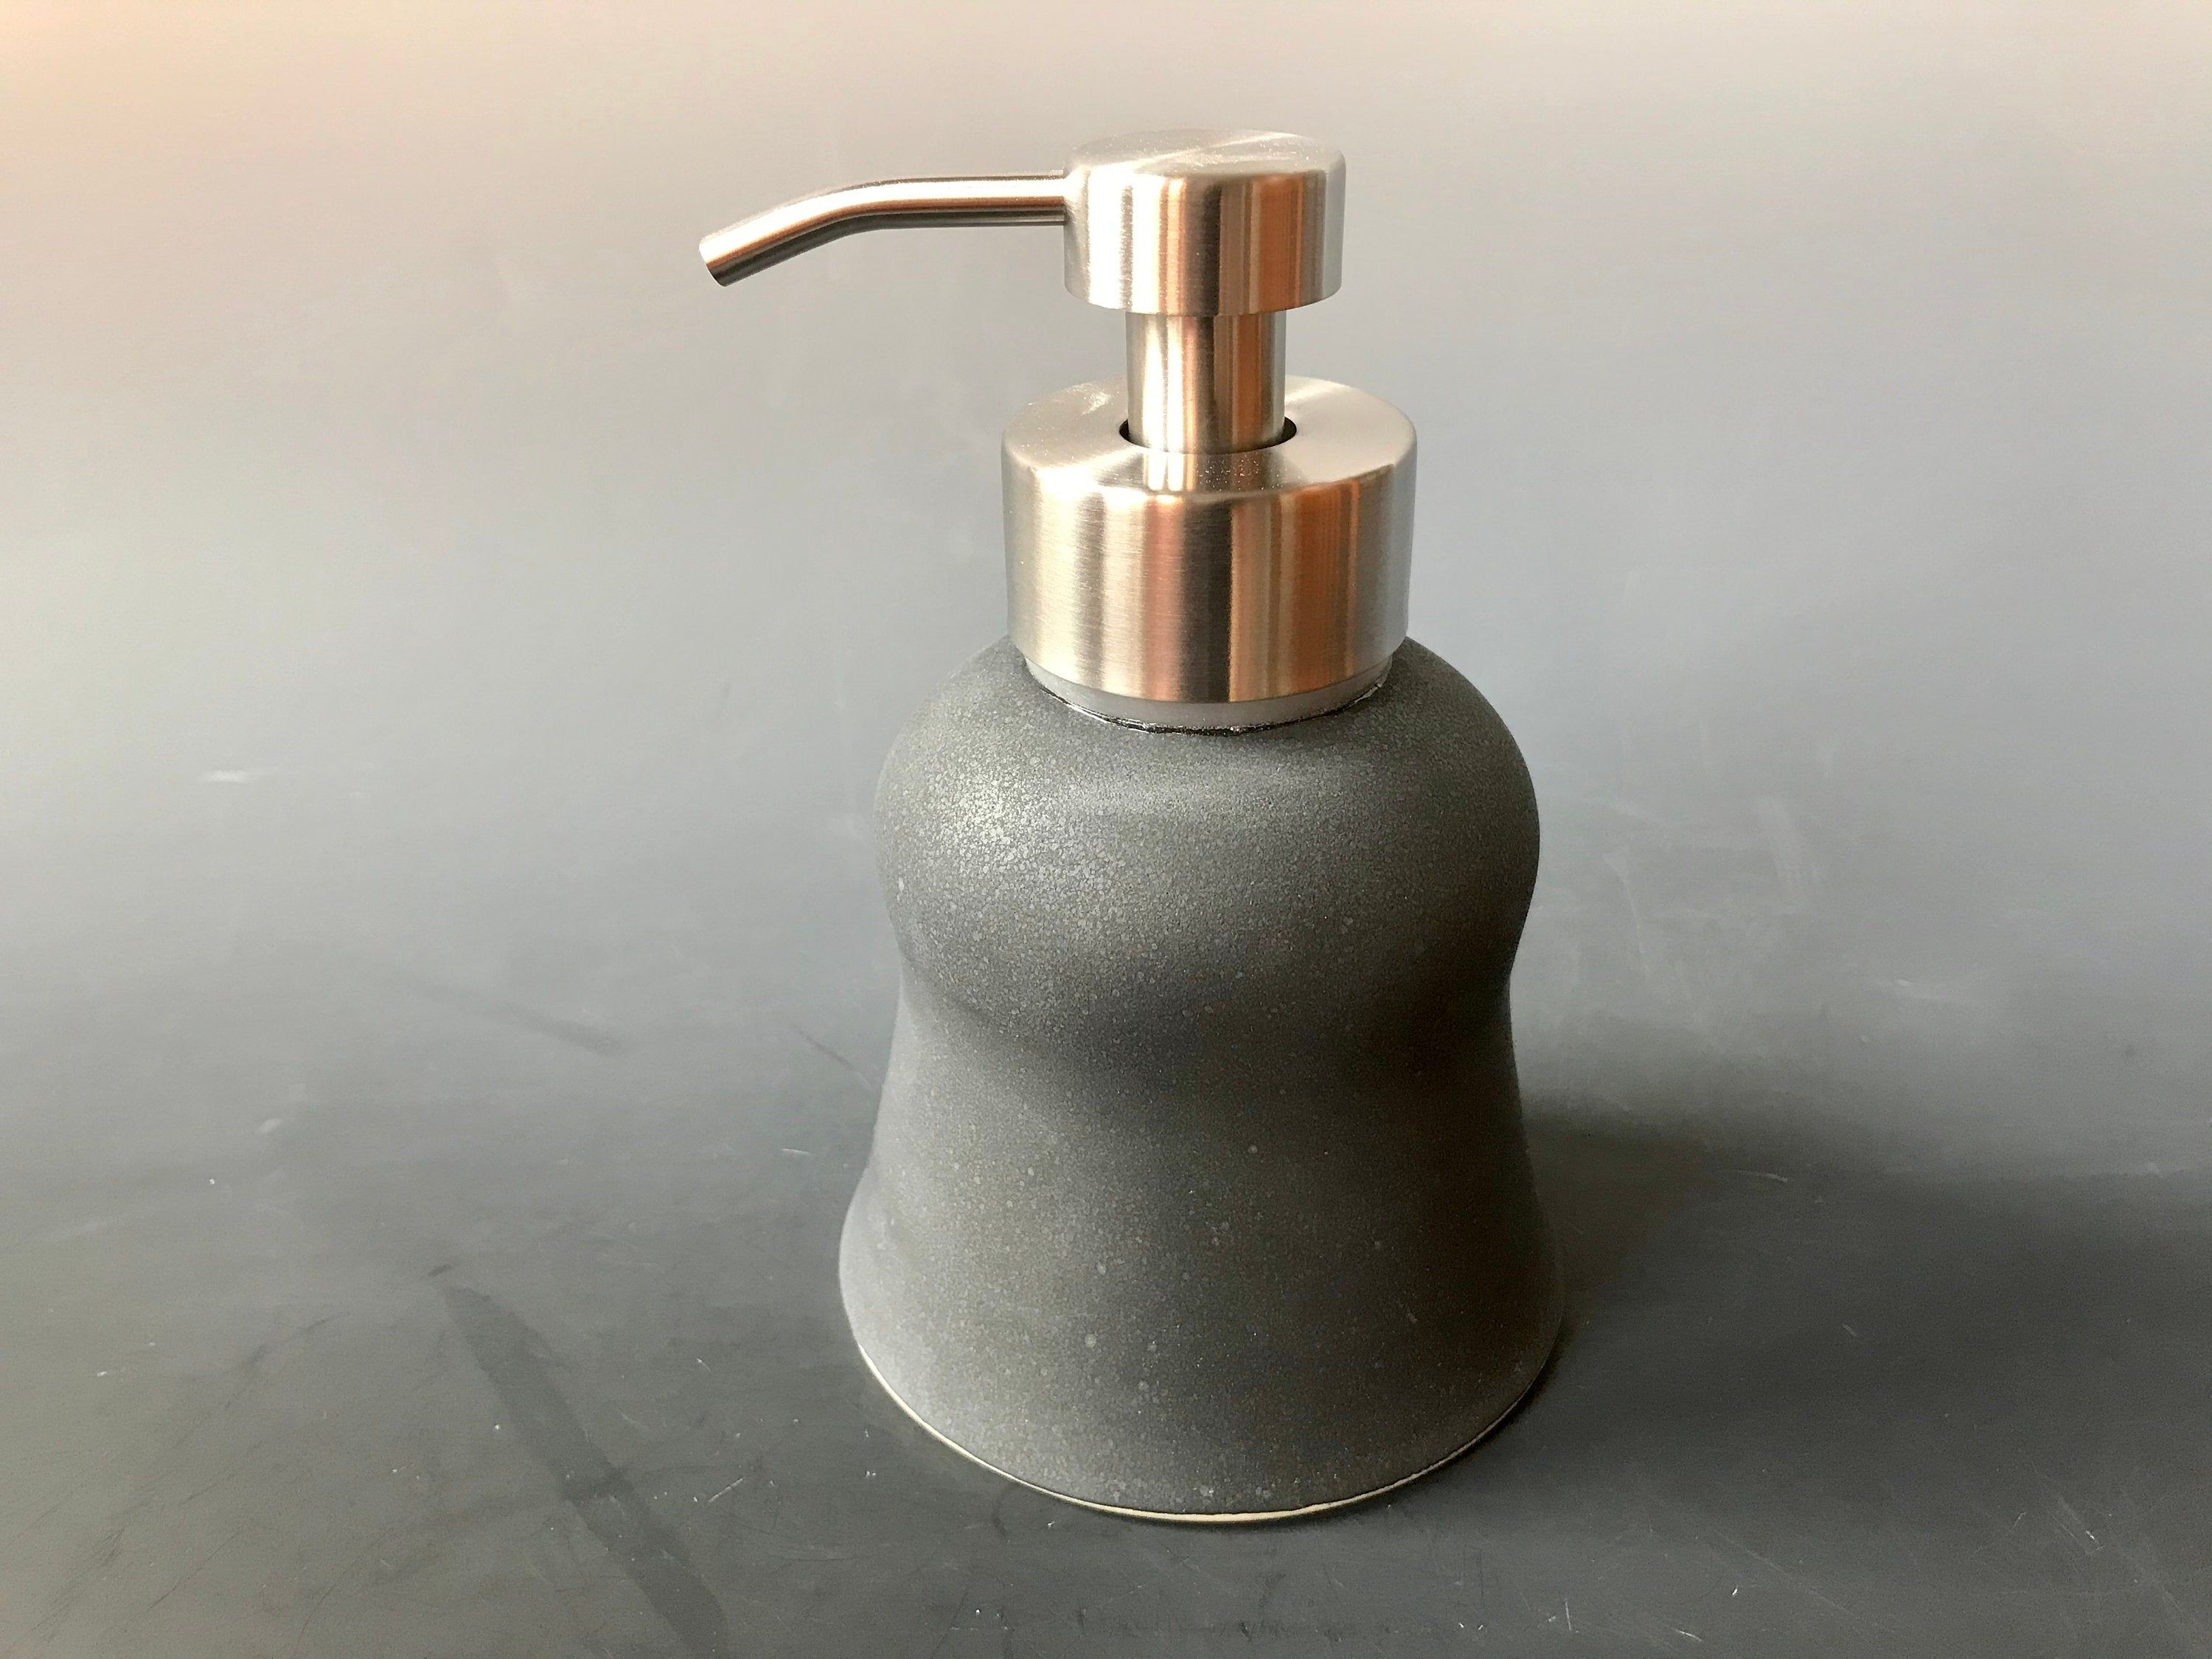 Foaming Pottery Soap Dispenser Matte Black Glaze Stainless Steel